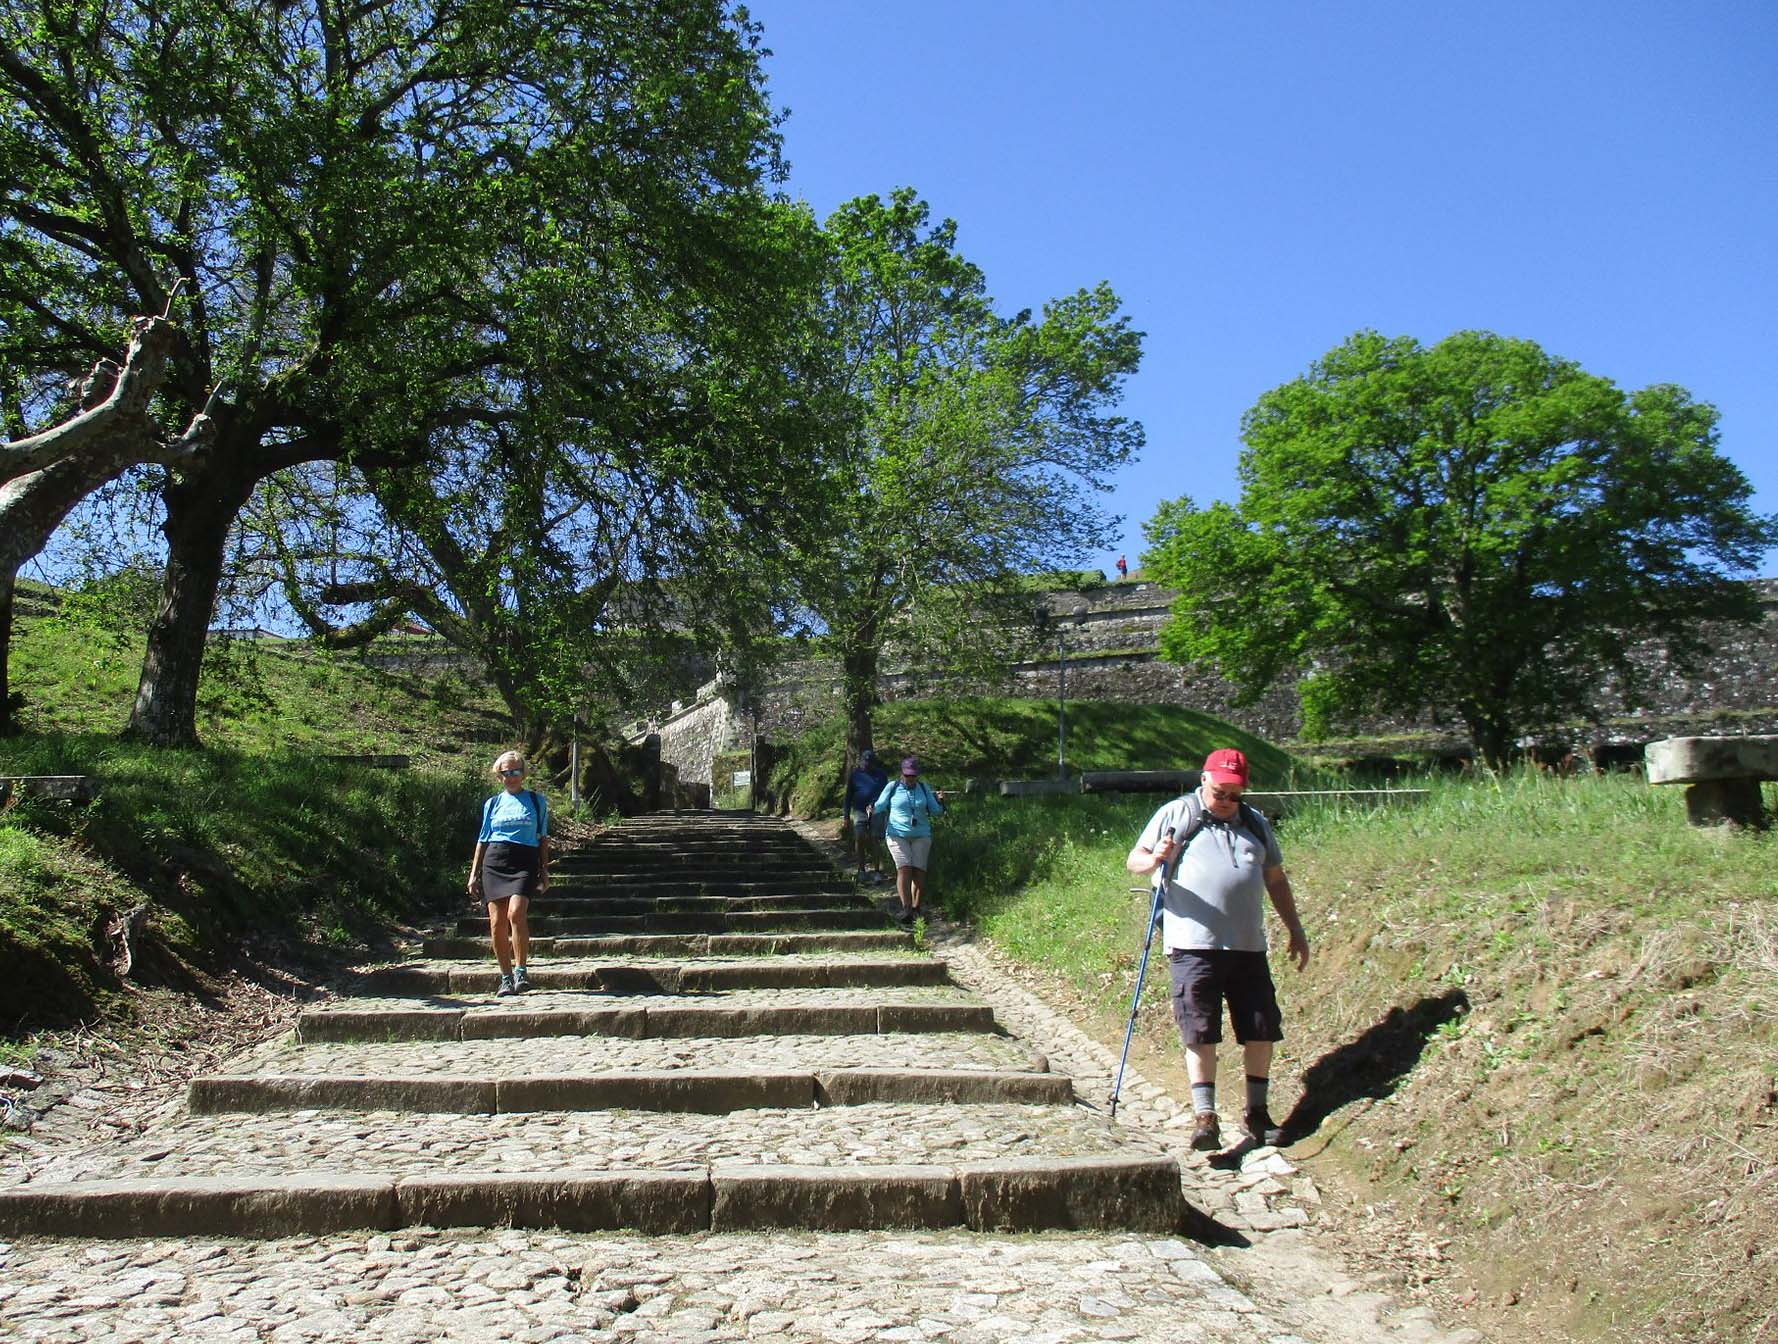 Outdoor Kinder Camino De Santiago Tour Photos And Guided Walking Tours From